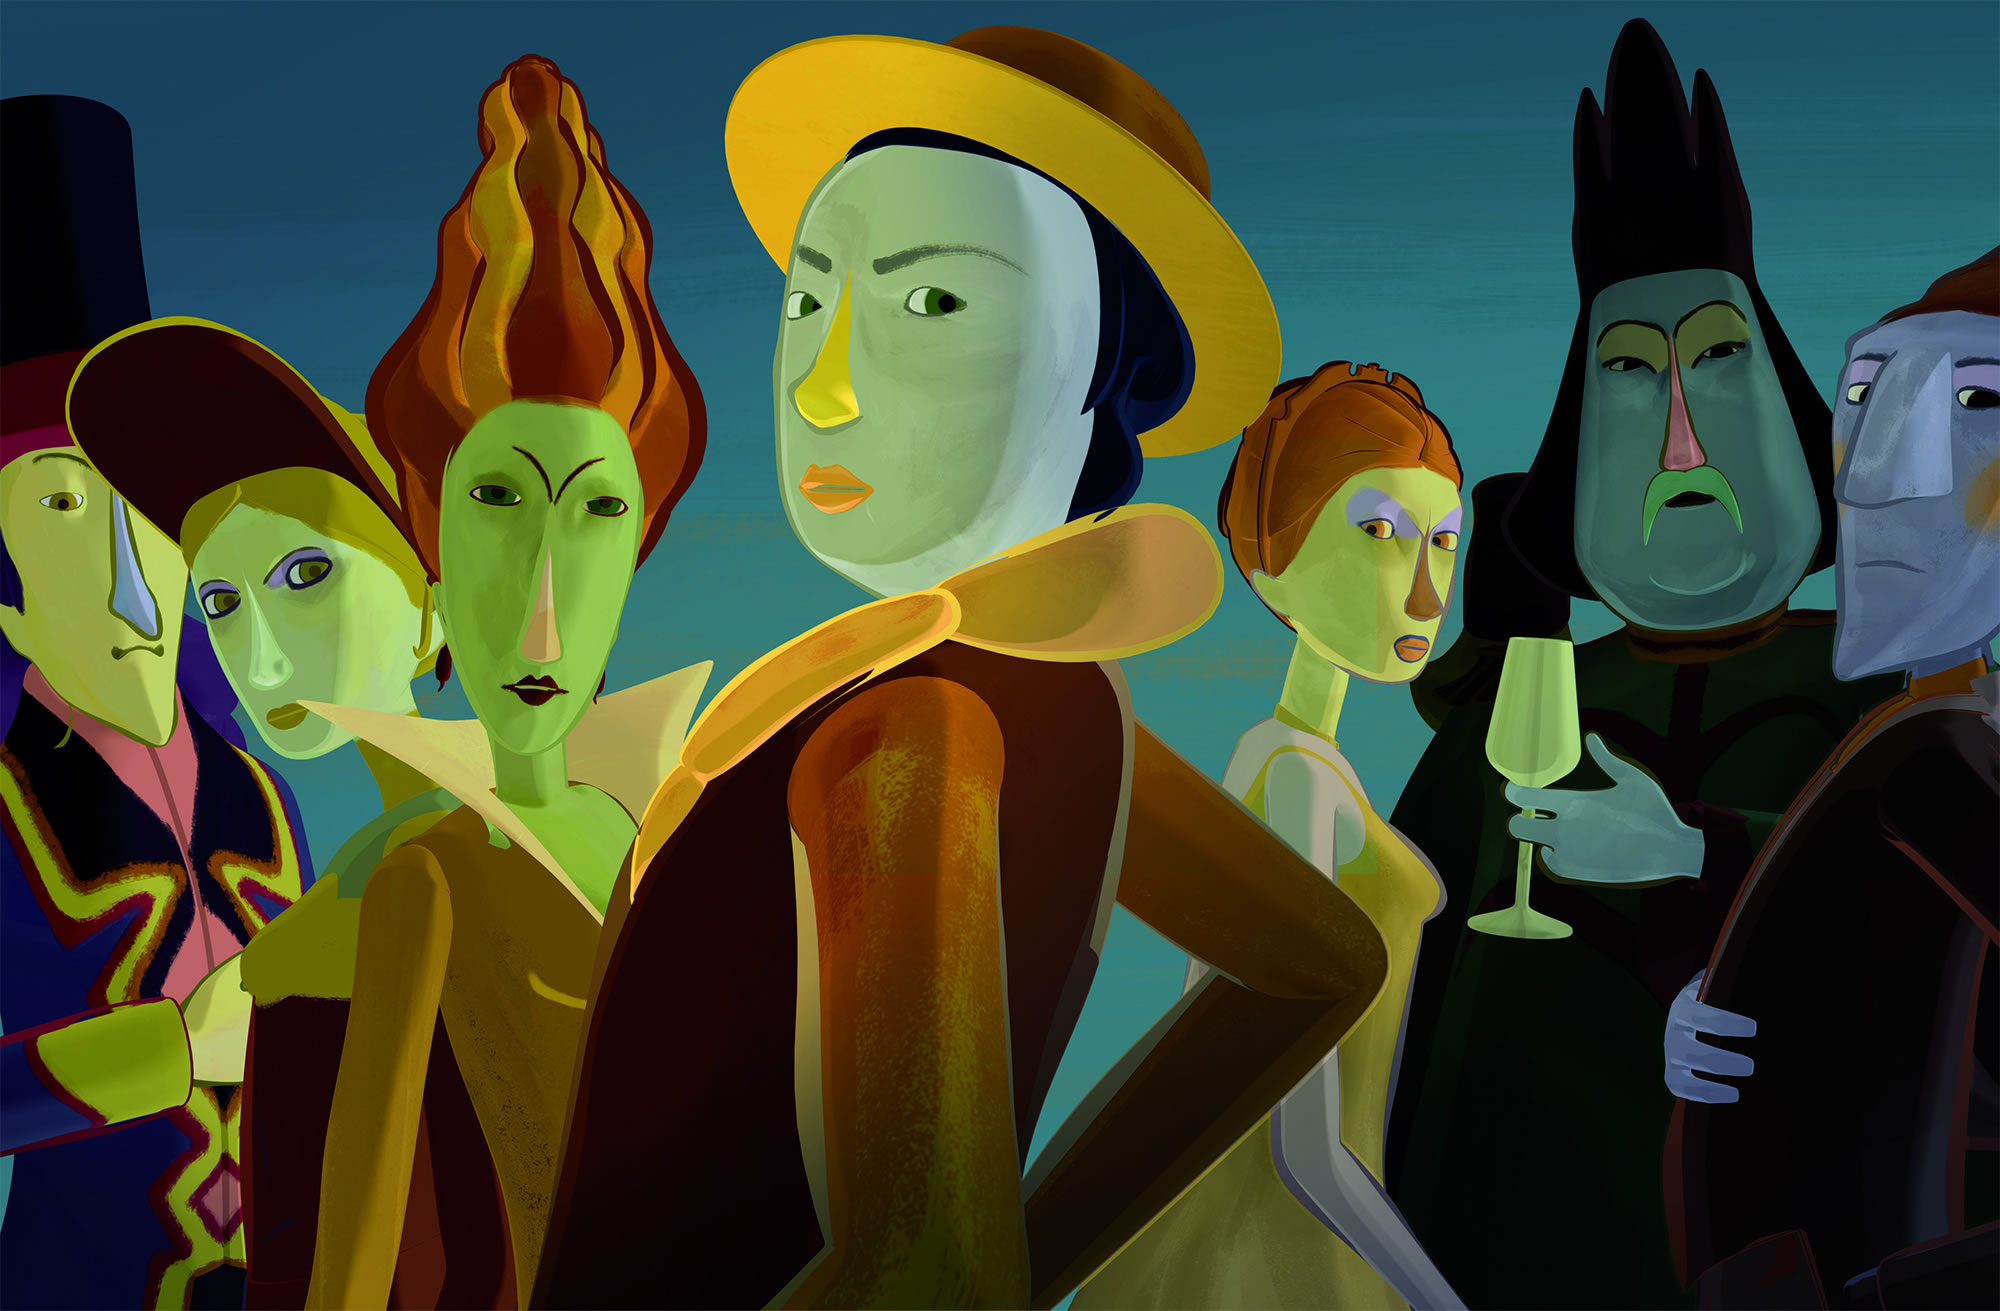 characters from the movie, The painting